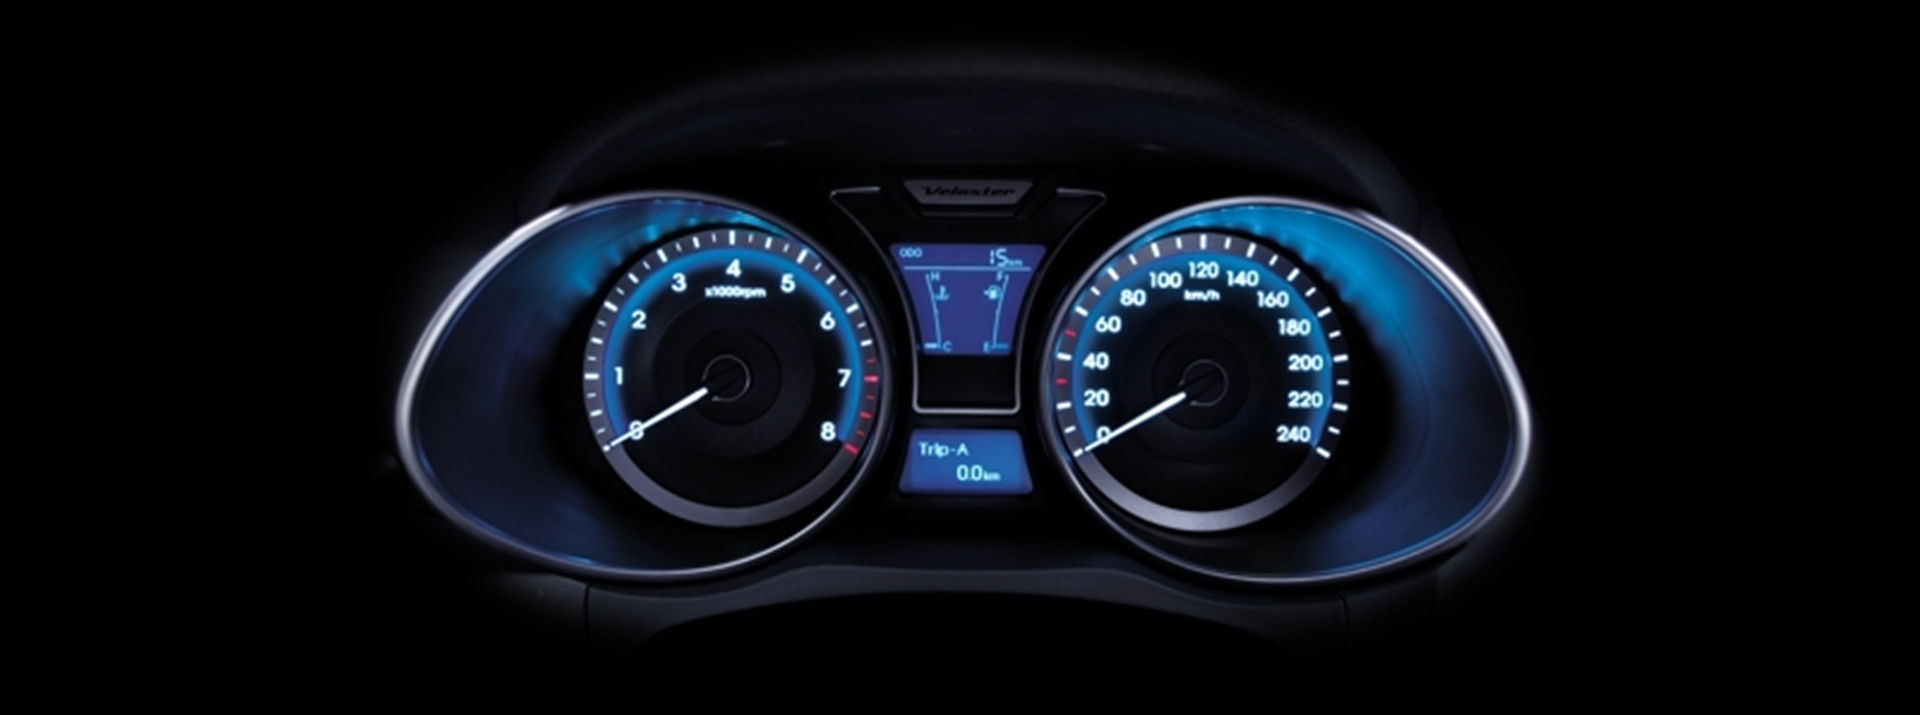 Veloster instruments